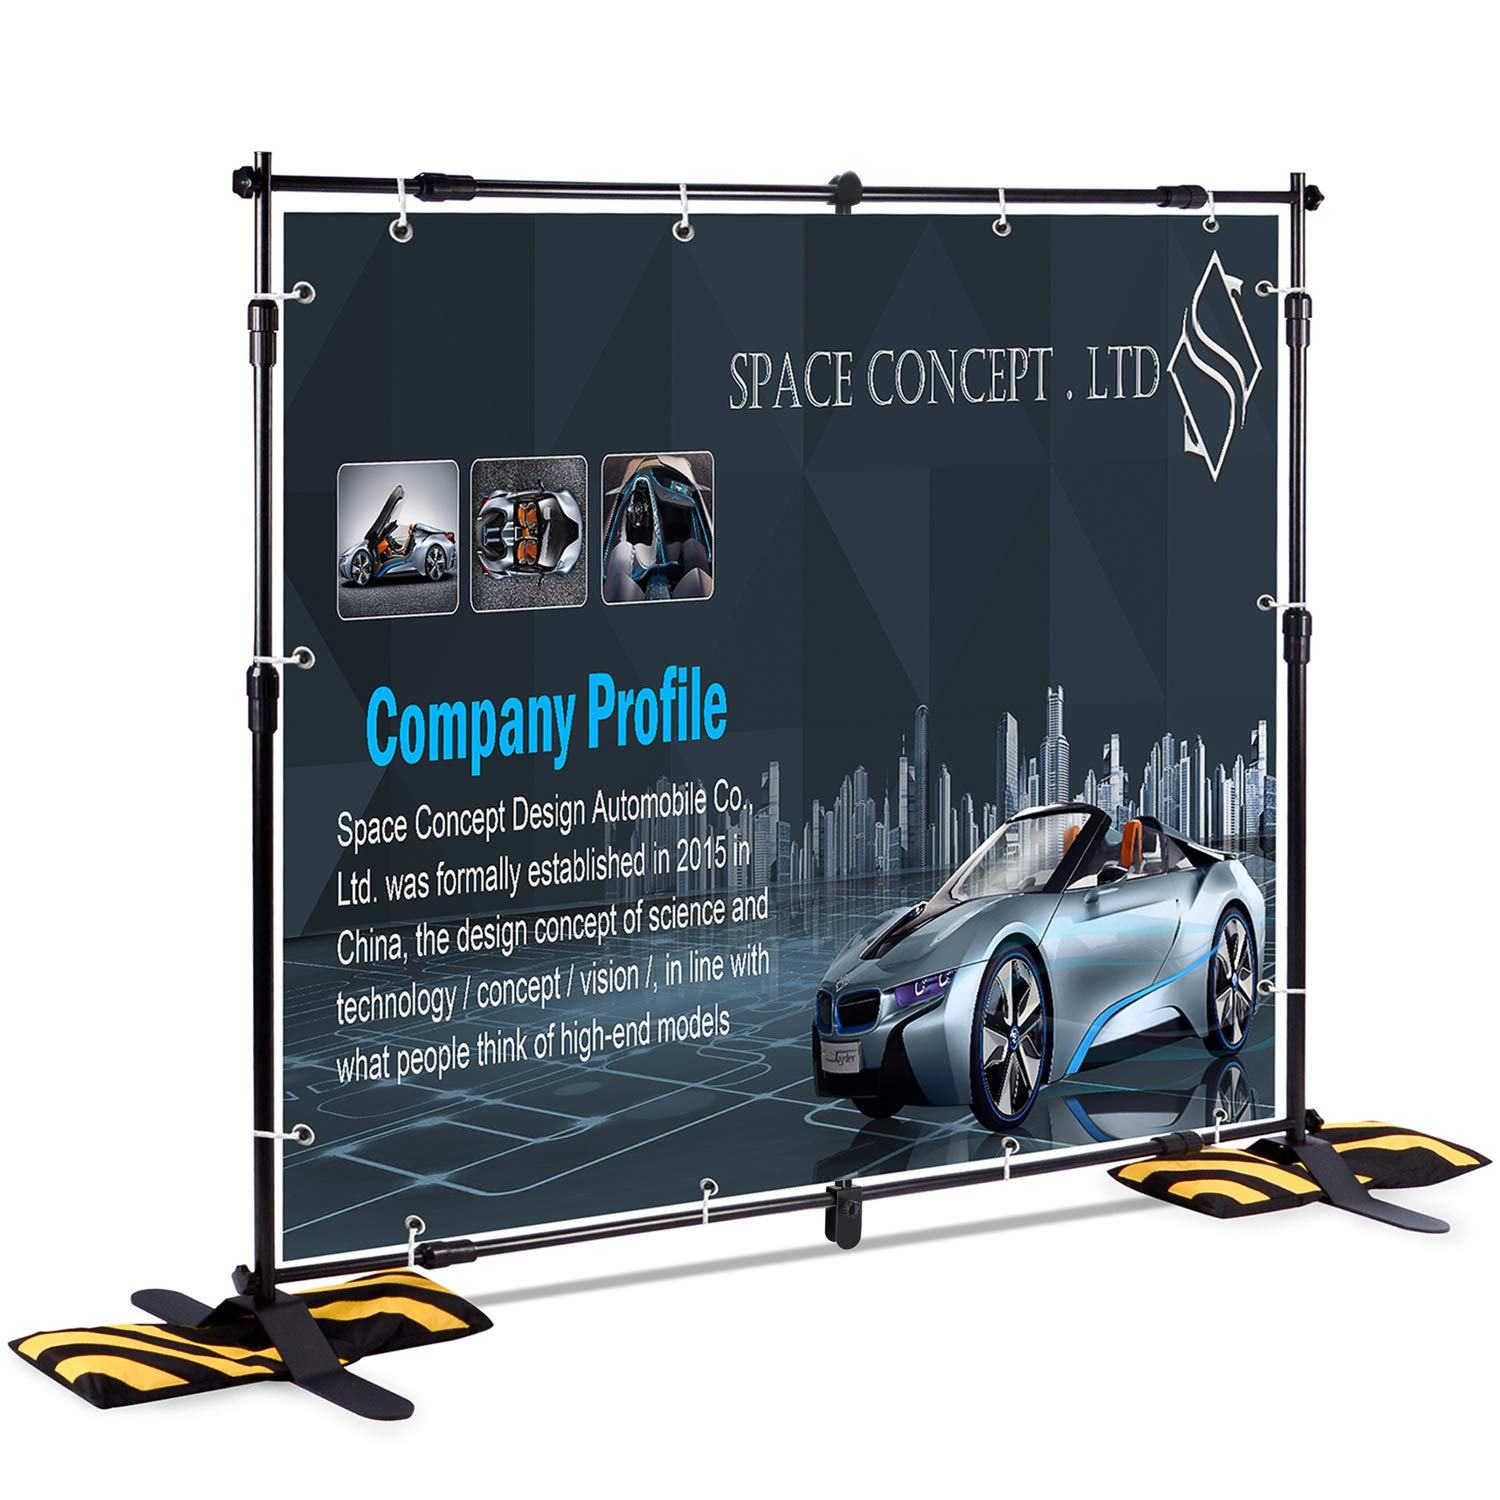 T-SIGN 8x8 ft Professional Backdrop Banner Stand Large Heavy Duty Telescopic Step and Repeat, Trade Show Photo Booth Background, Carry Bag, Sand Bags by T-SIGN